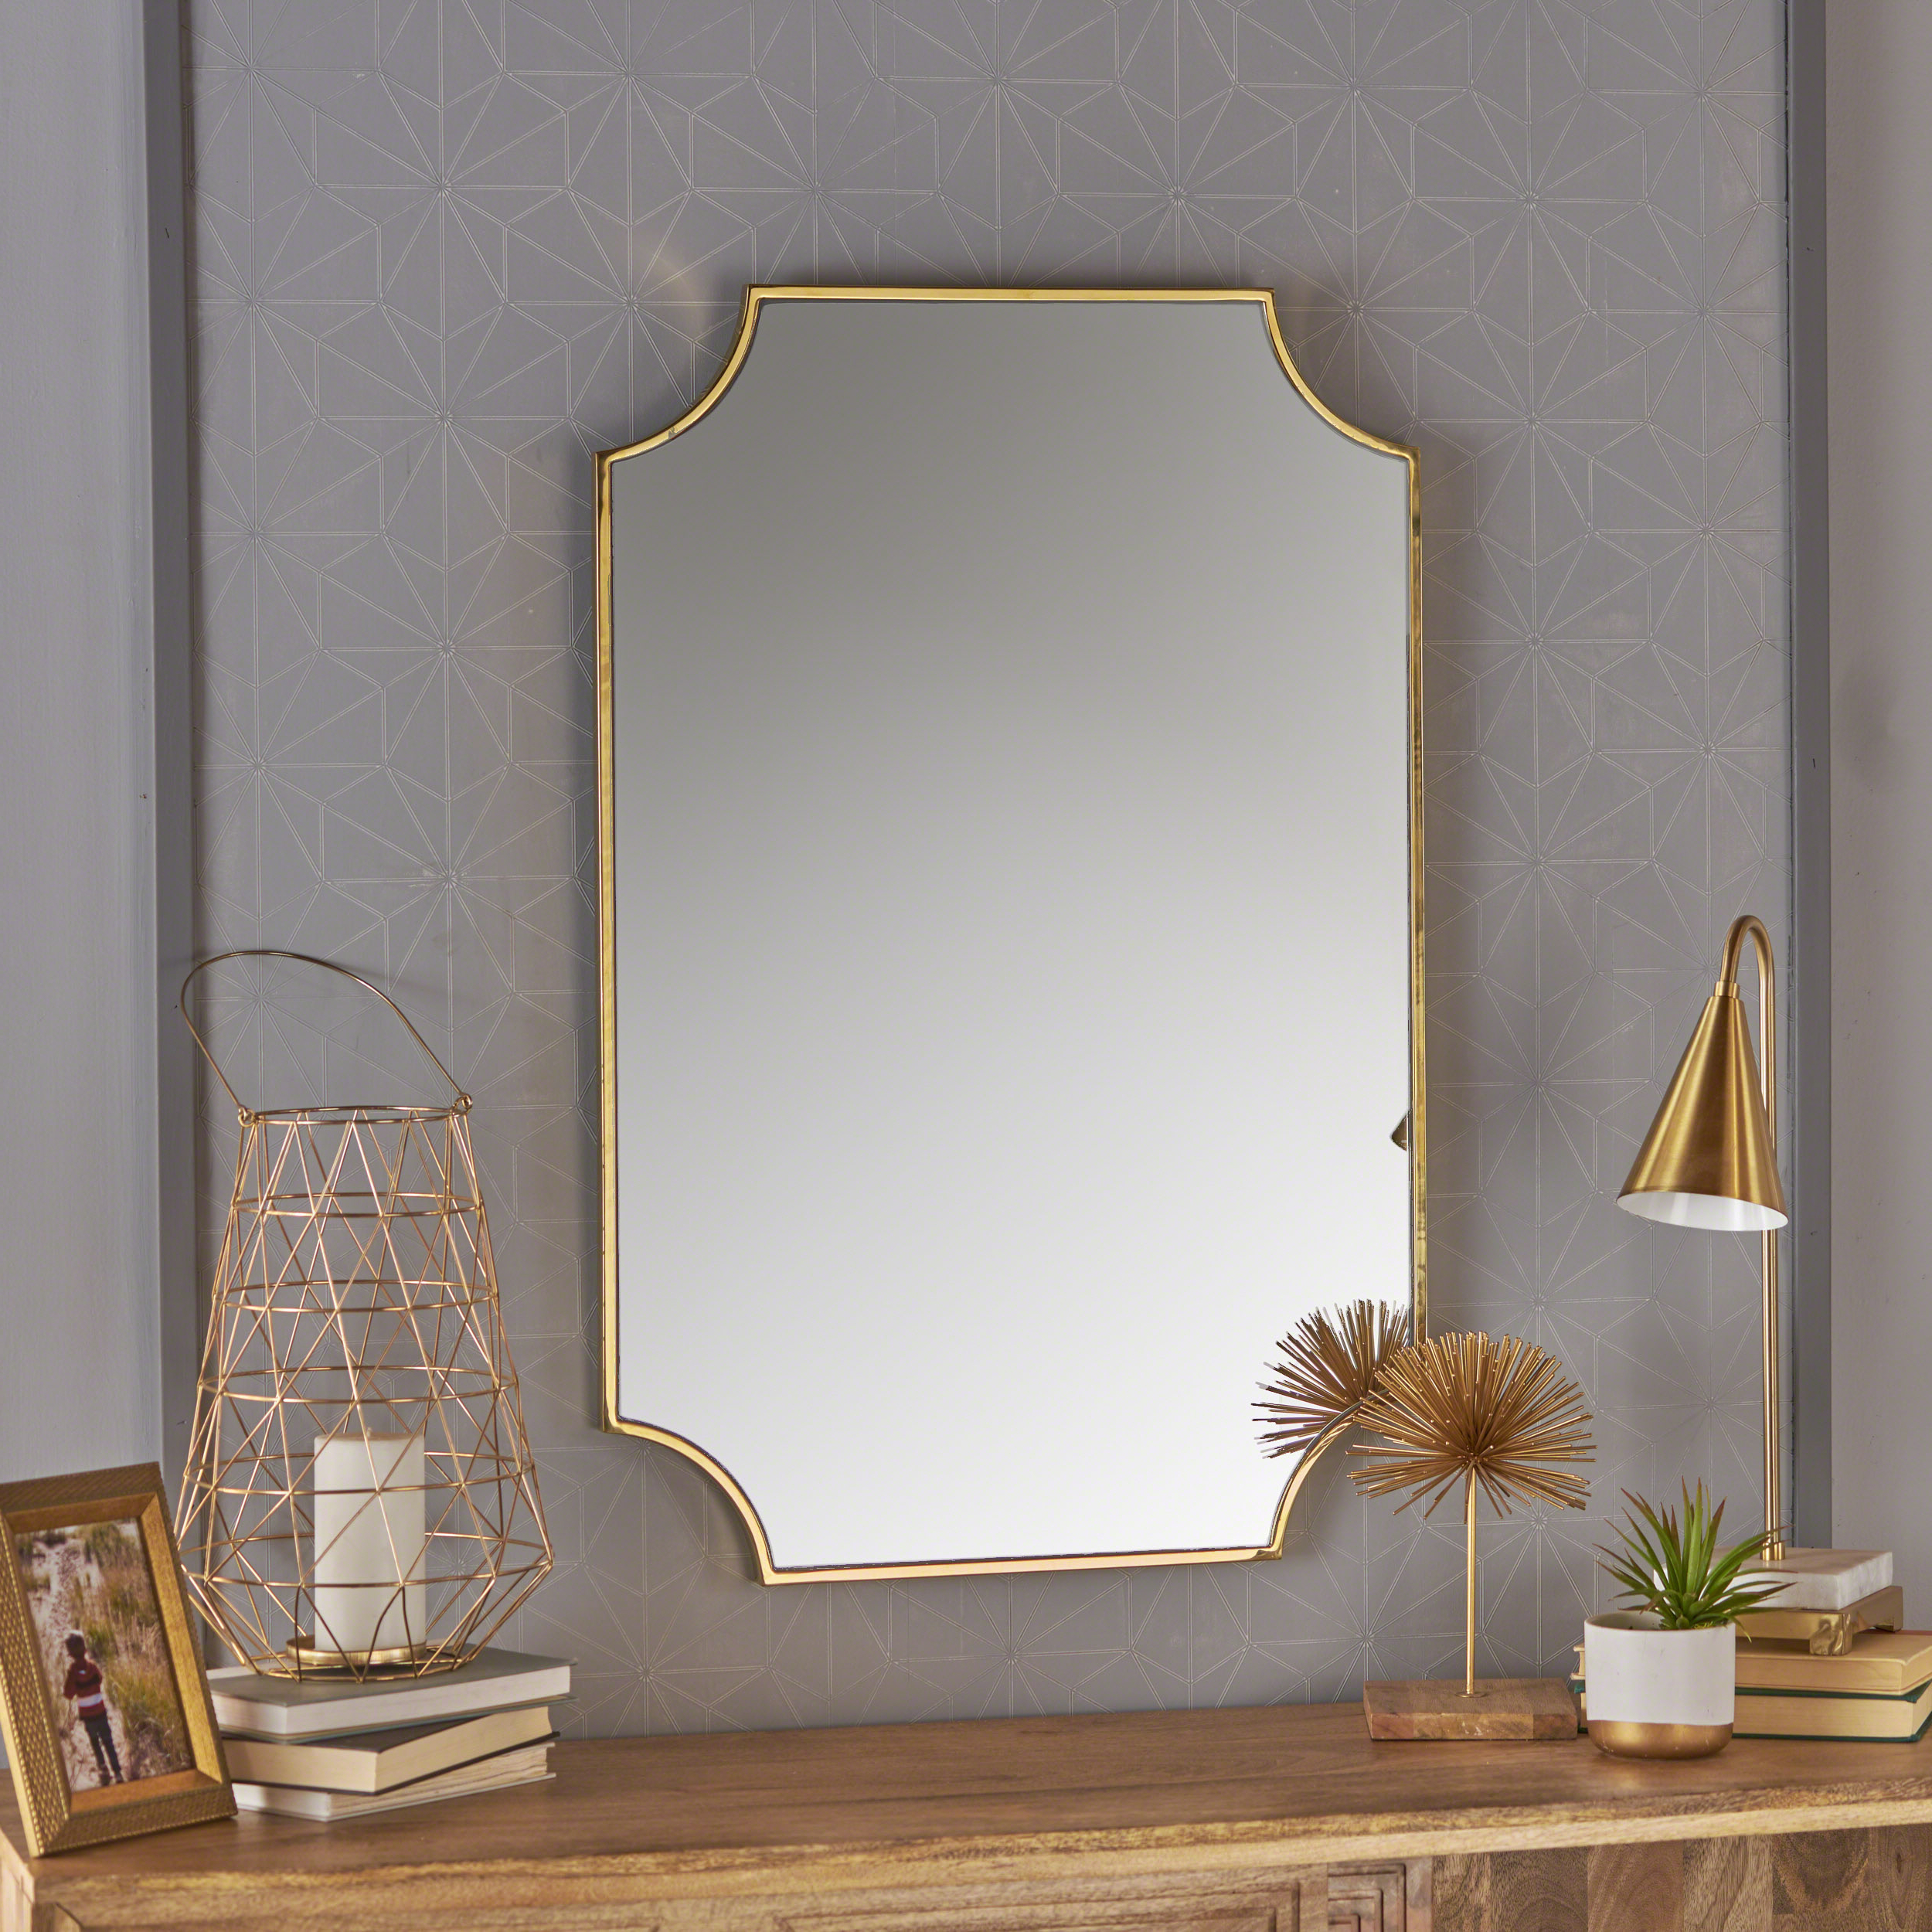 Recent Estelle Glam Wall Mirror With Stainless Steel Frame, Gold Finish Within Stainless Steel Wall Mirrors (View 10 of 20)